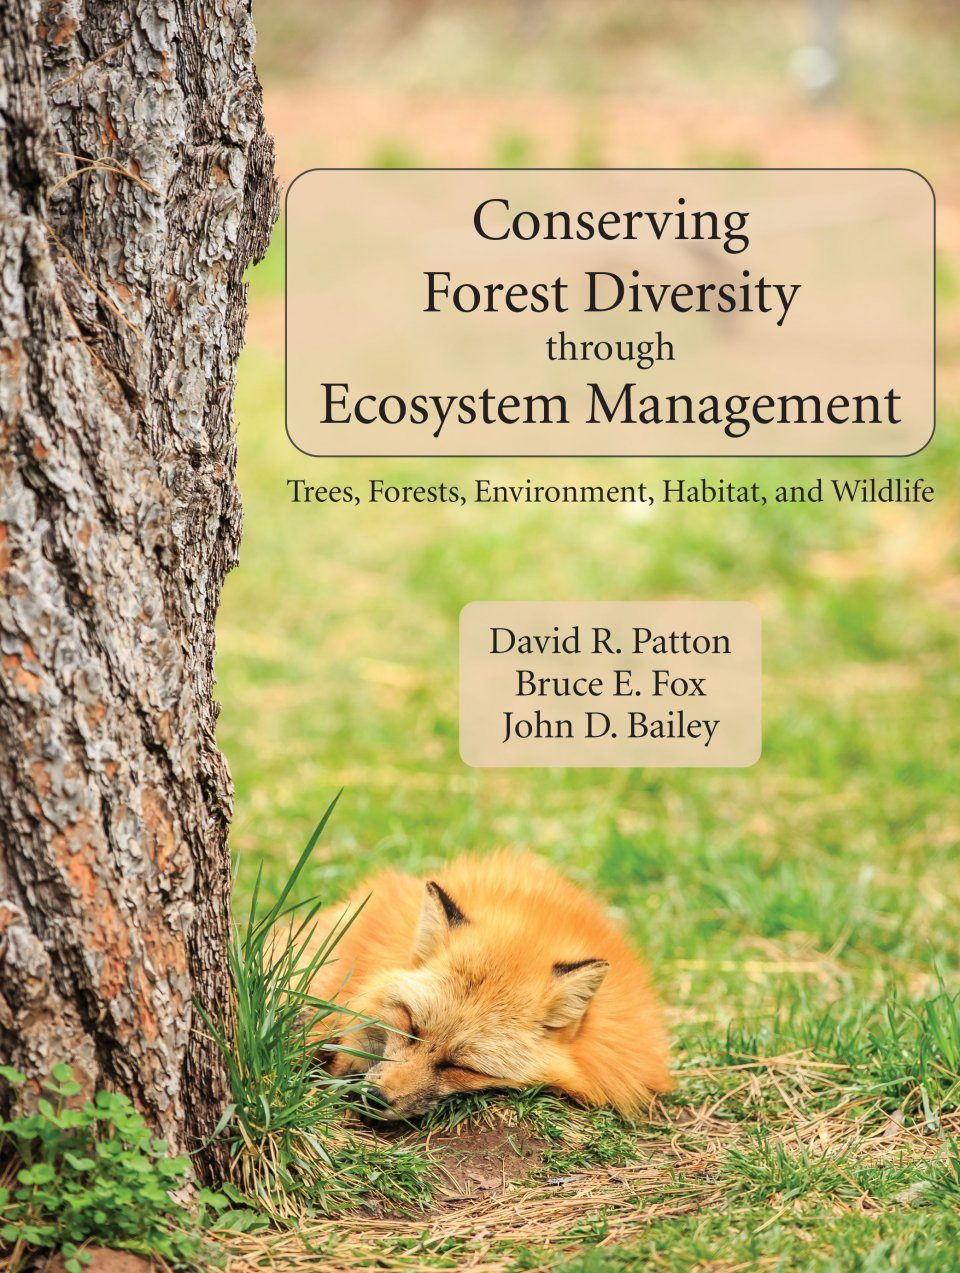 Conserving Forest Diversity through Ecosystem Management